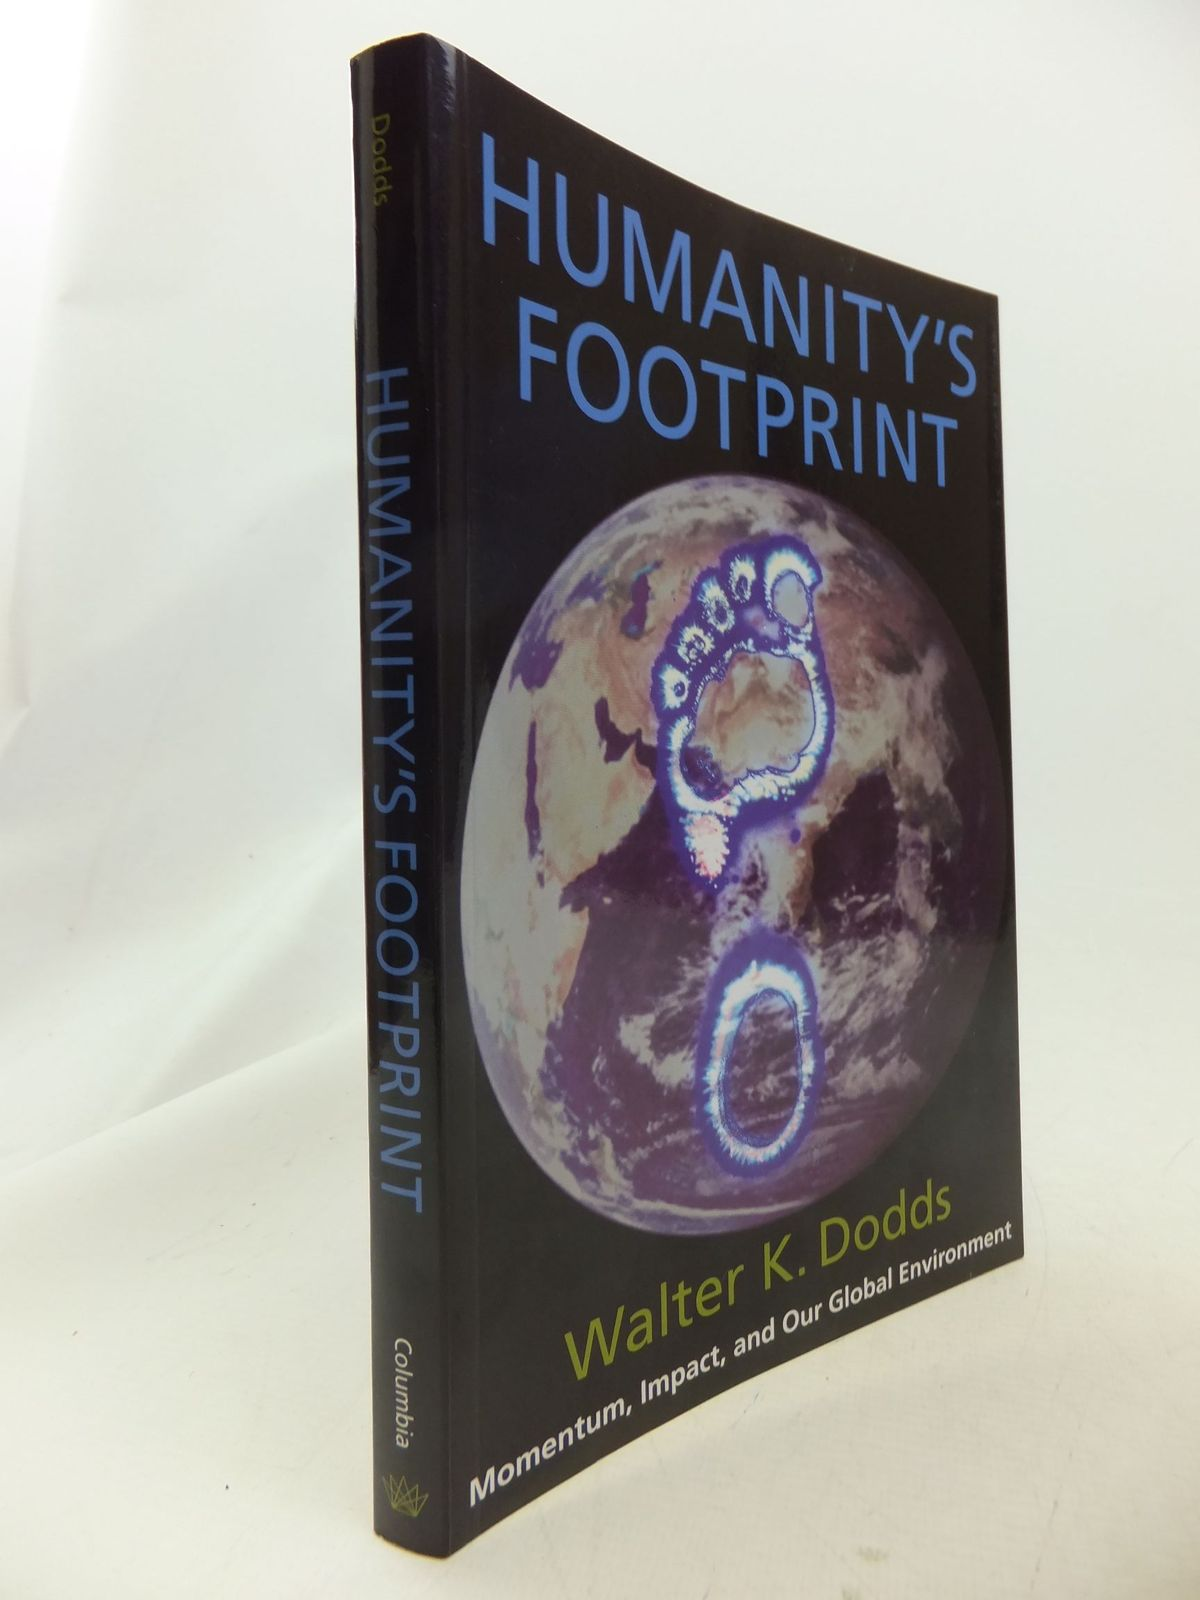 Photo of HUMANITY'S FOOTPRINT MOMENTUM, IMPACT, AND OUR GLOBAL ENVIROMENT- Stock Number: 1710819